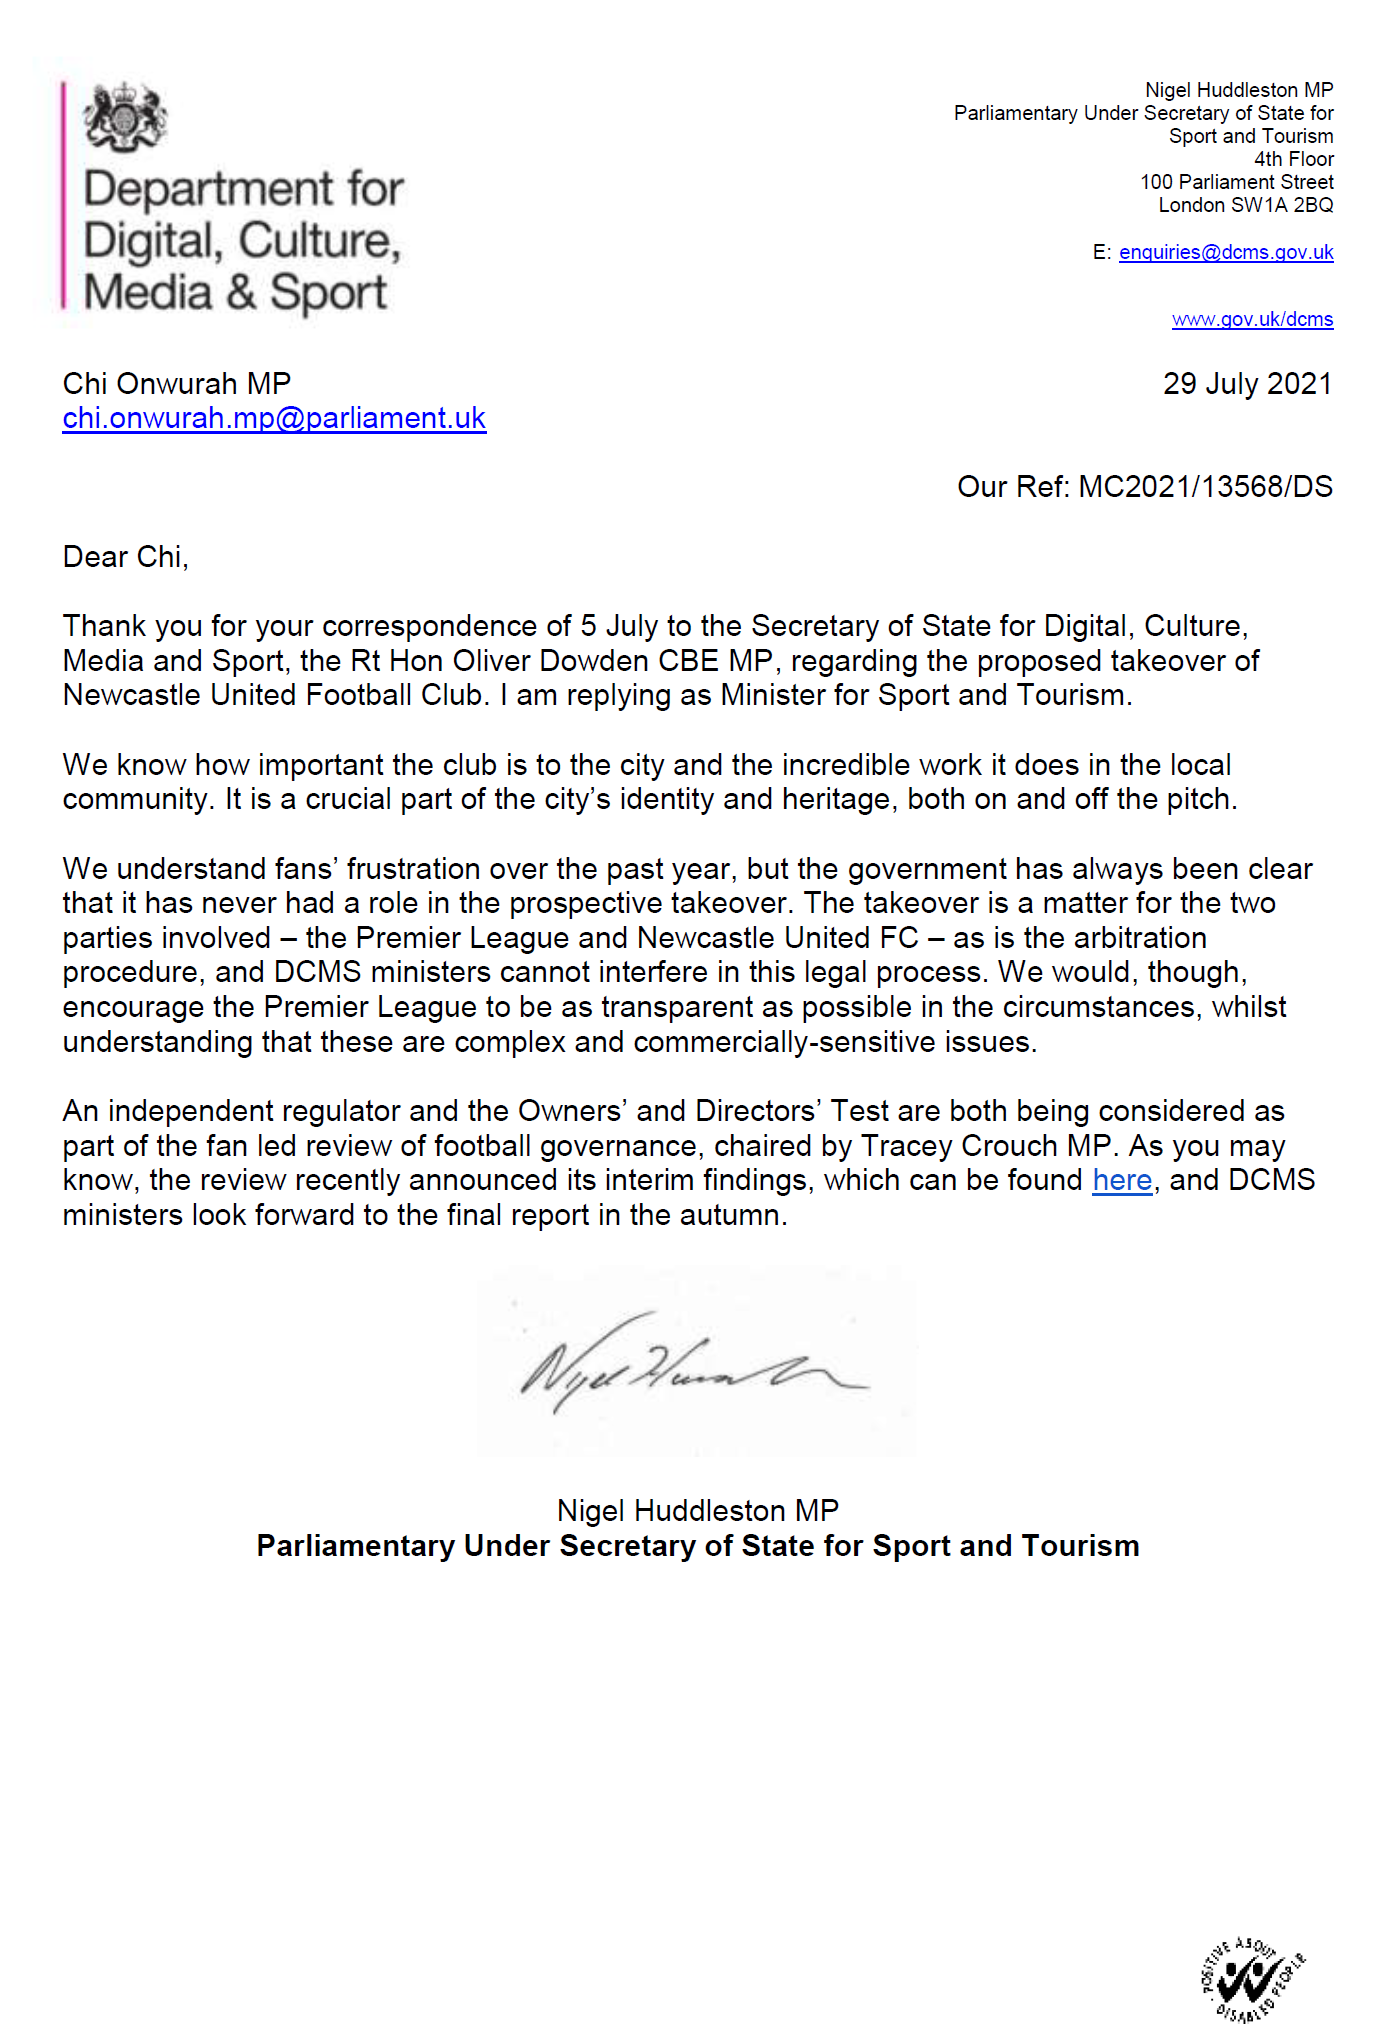 Minister Responds on NUFC Takeover